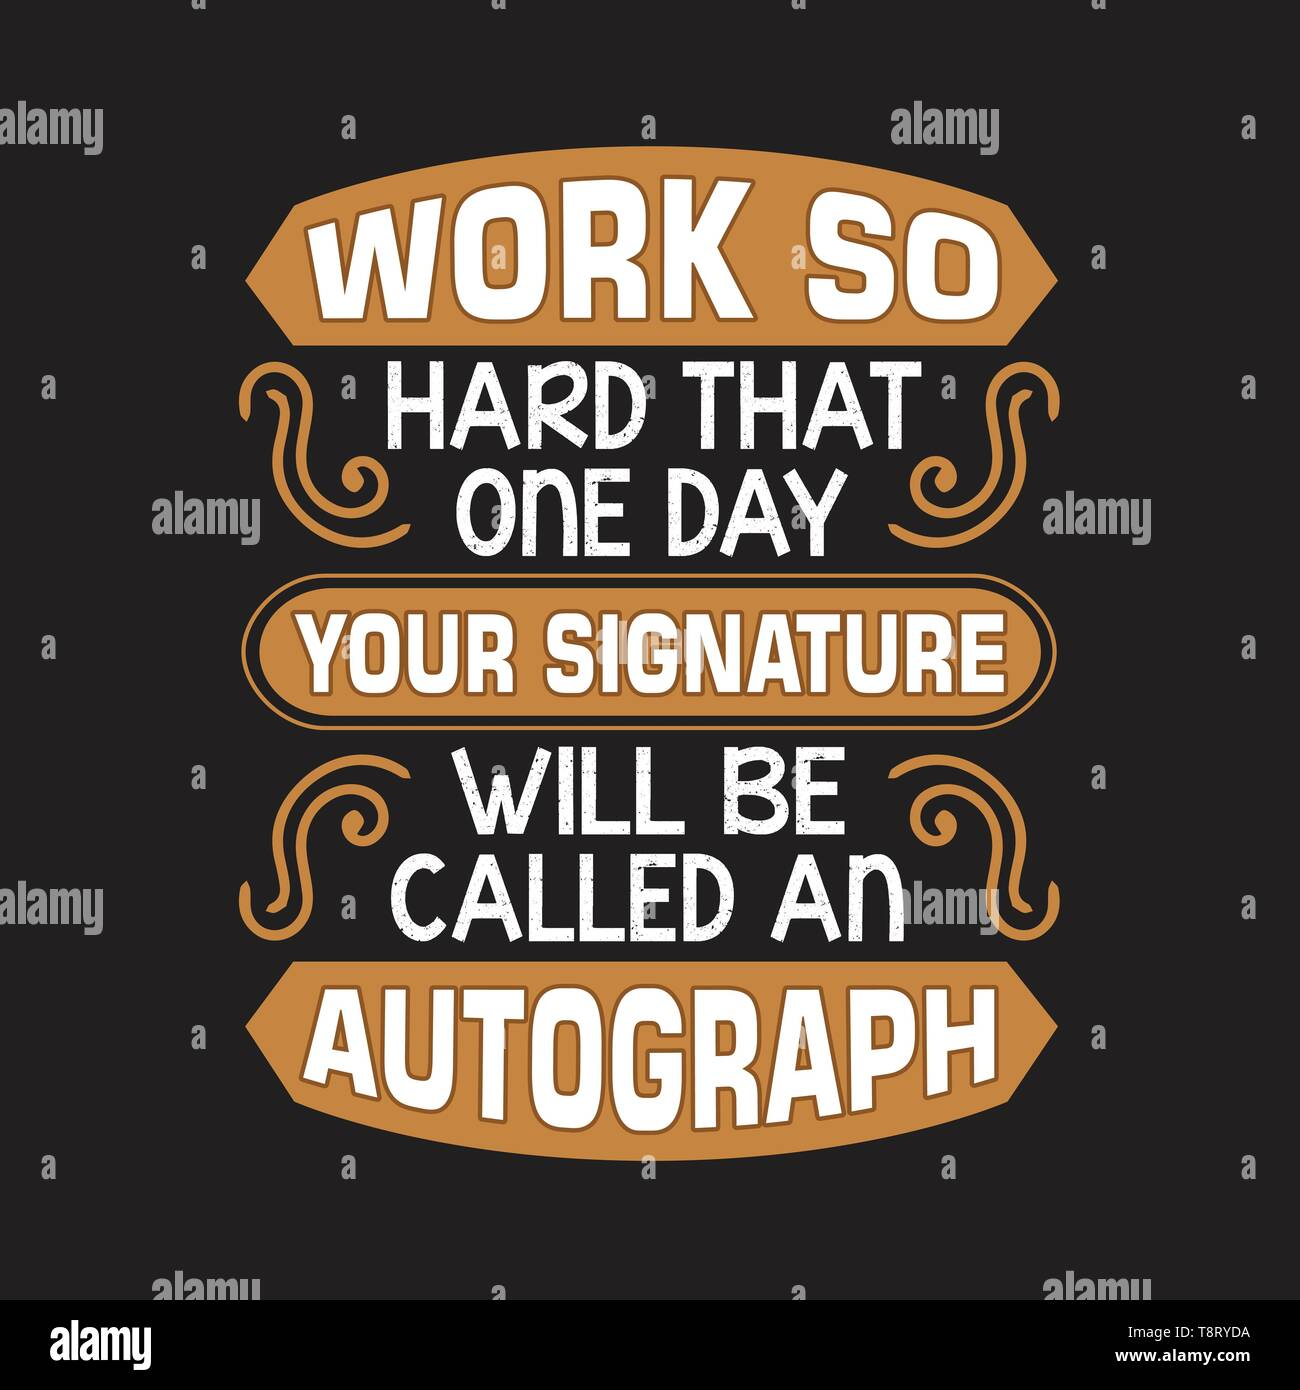 funny work quote work so hard that one day stock vector art